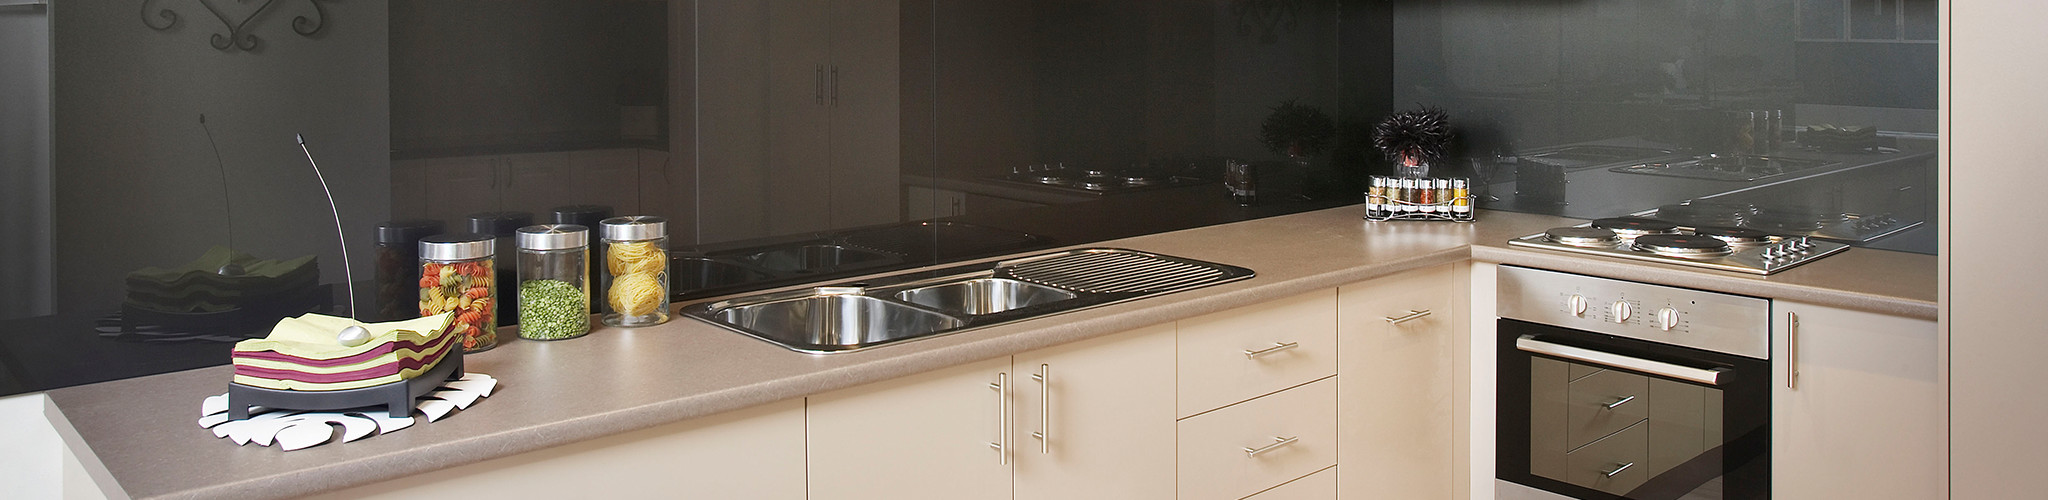 Save money on perth kitchen renovations flexi kitchens home solutioingenieria Image collections